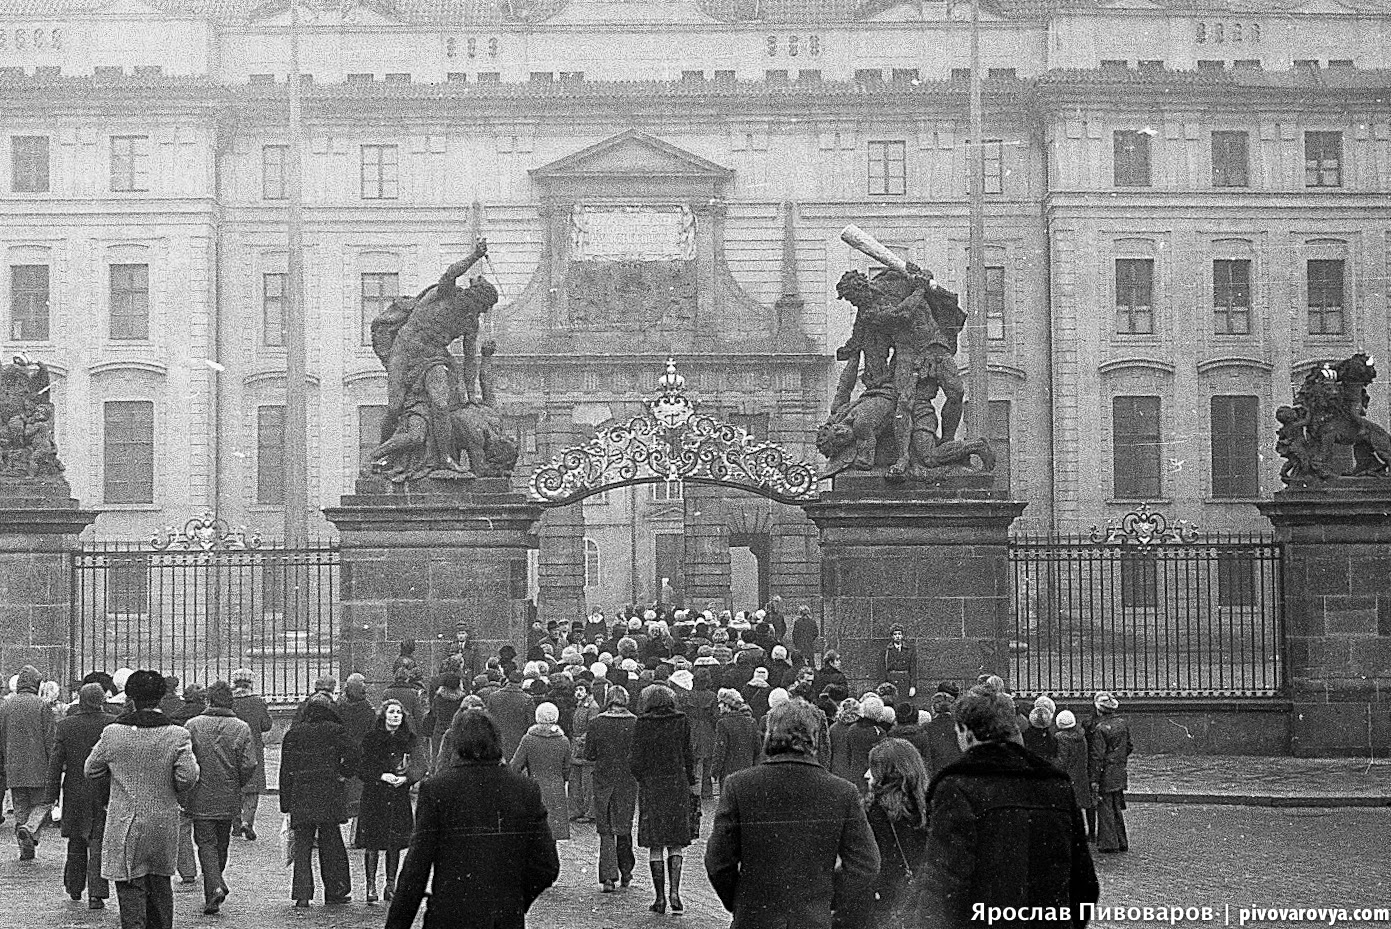 Old photographs of the Czech Republic